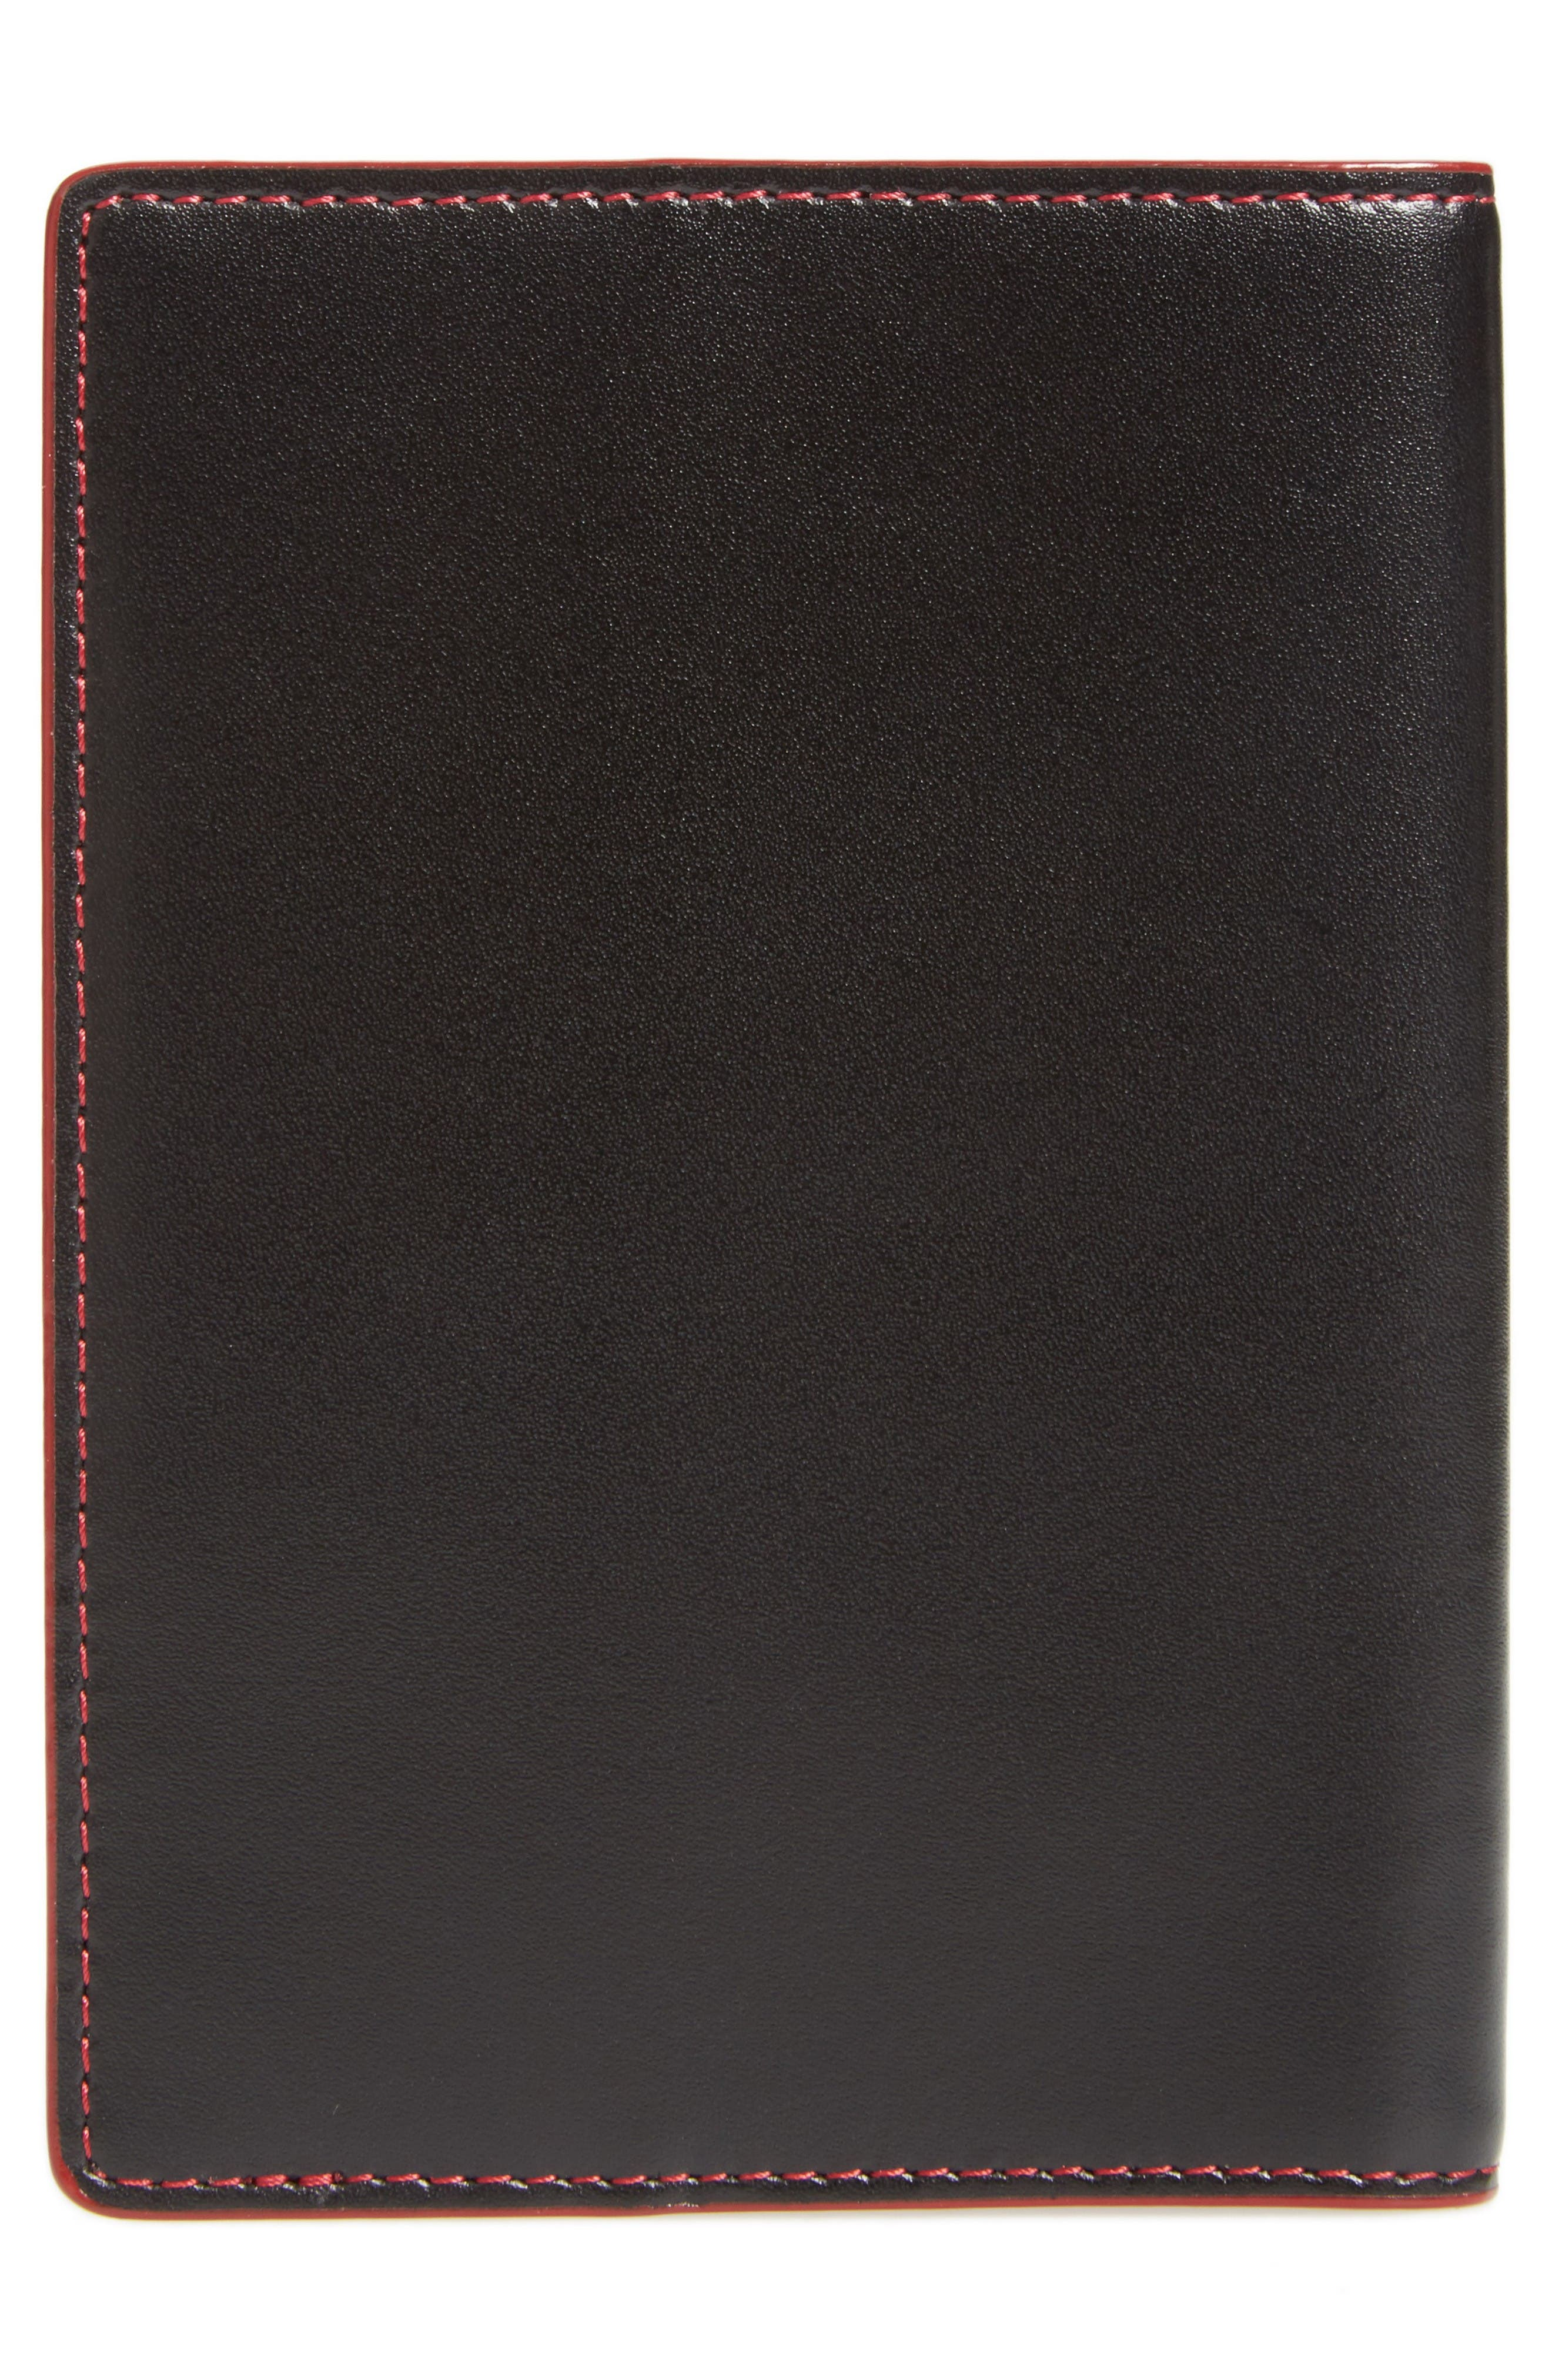 Alternate Image 3  - Lodis 'Audrey' Passport Case